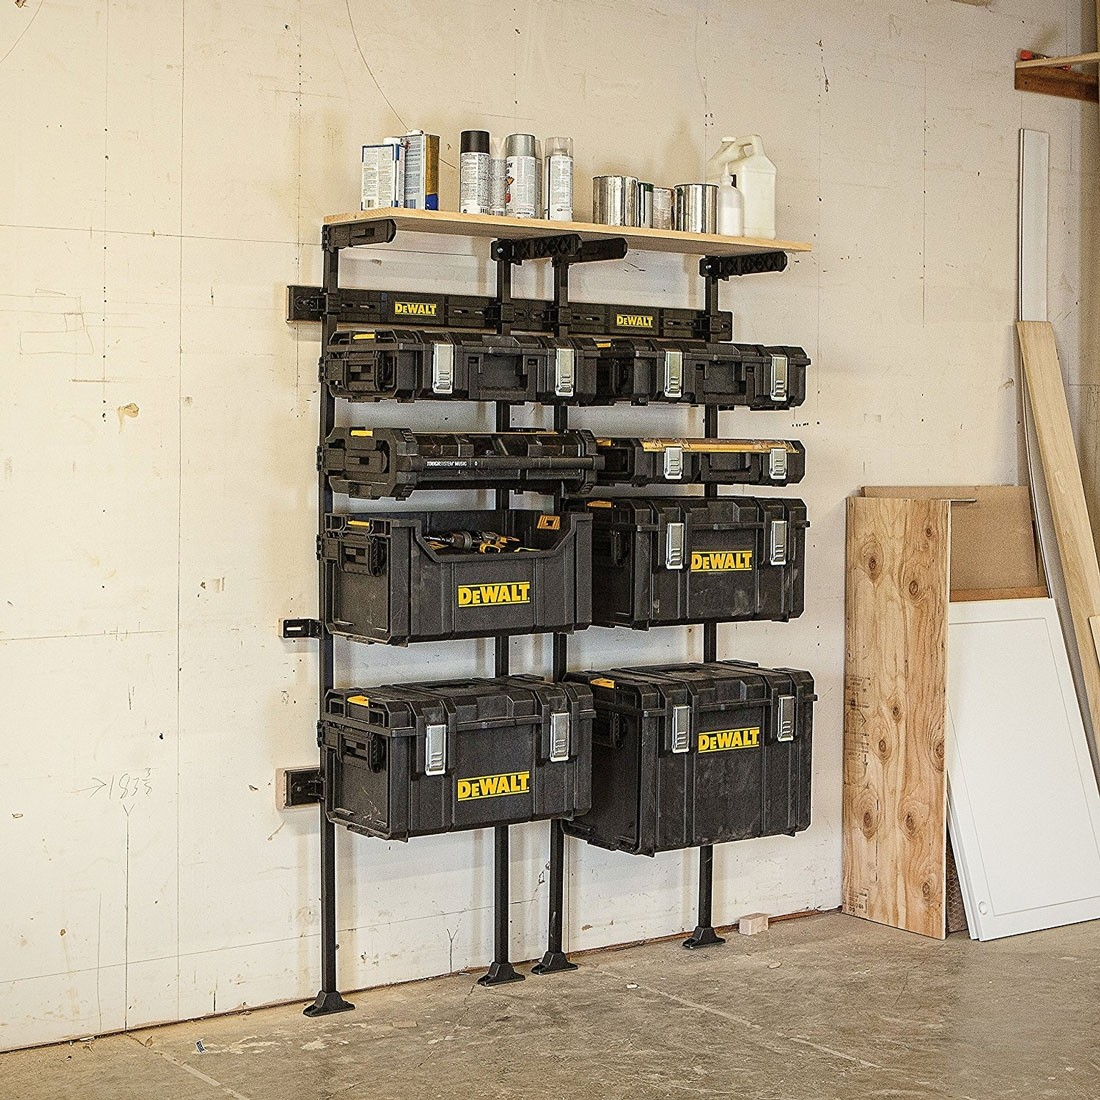 Dewalt Dwst1 75694 Toughsystem Workshop Racking System